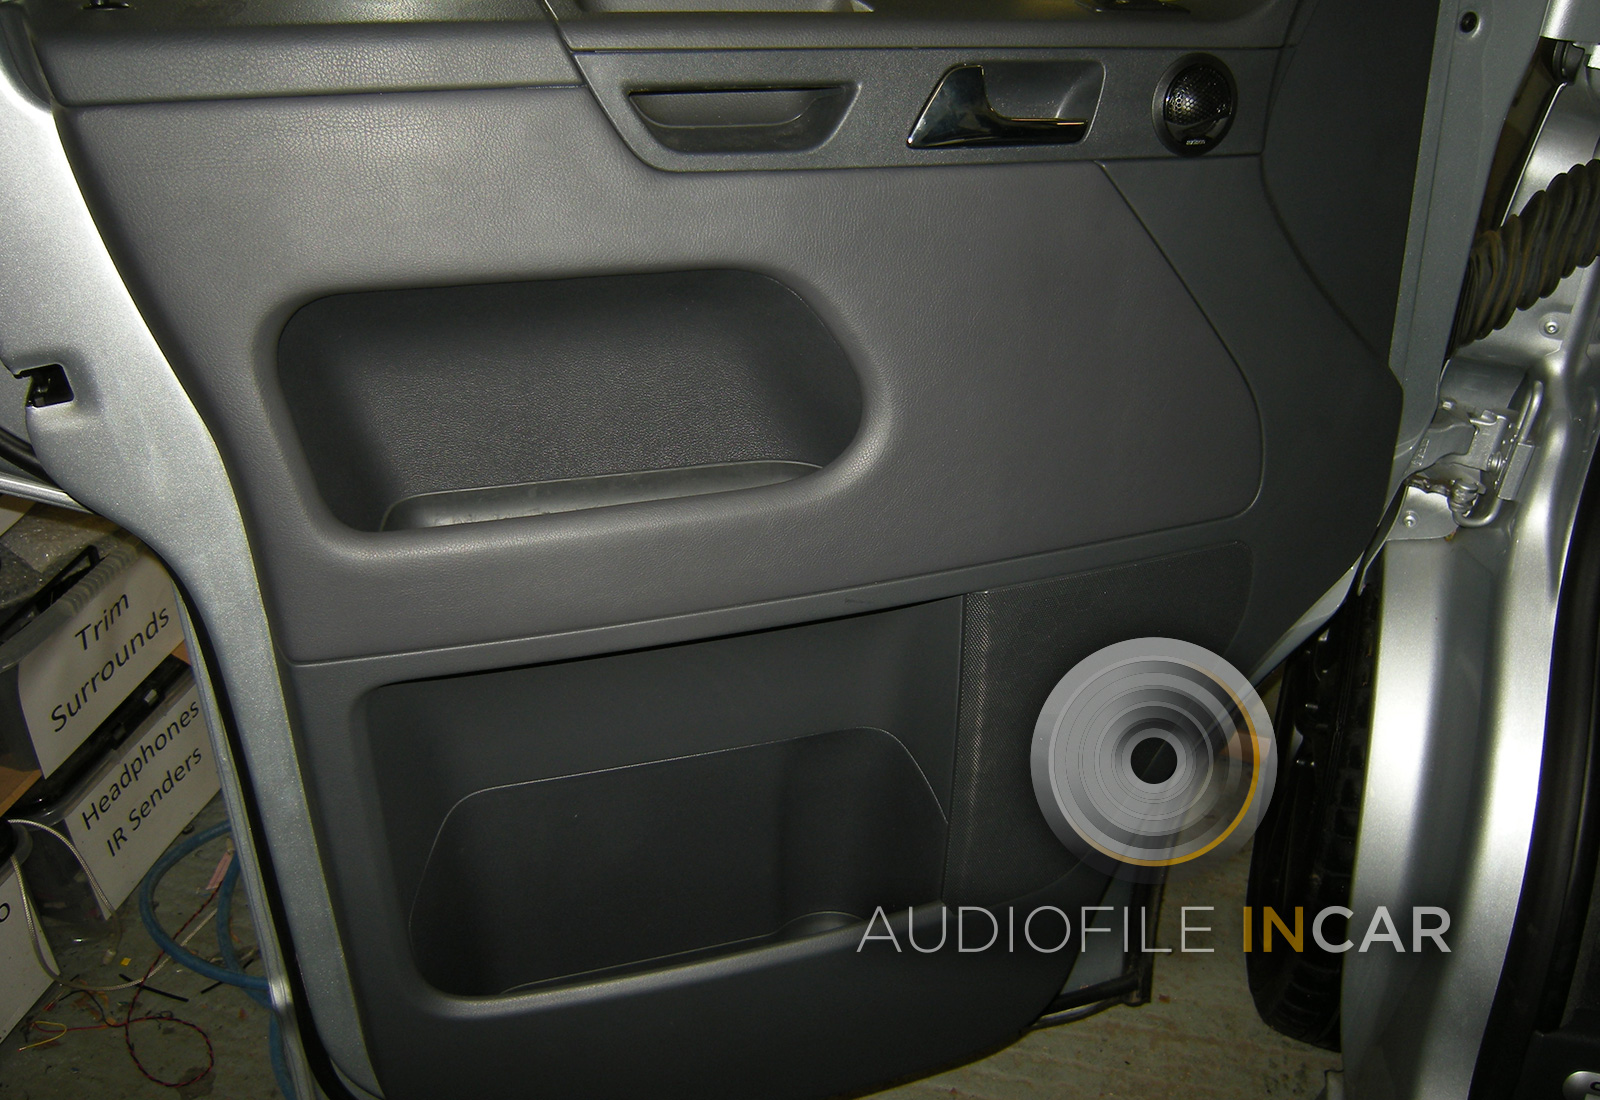 This image shows the Audison tweeter flush fitted into the re-assembled door which is now completely sound proofed.